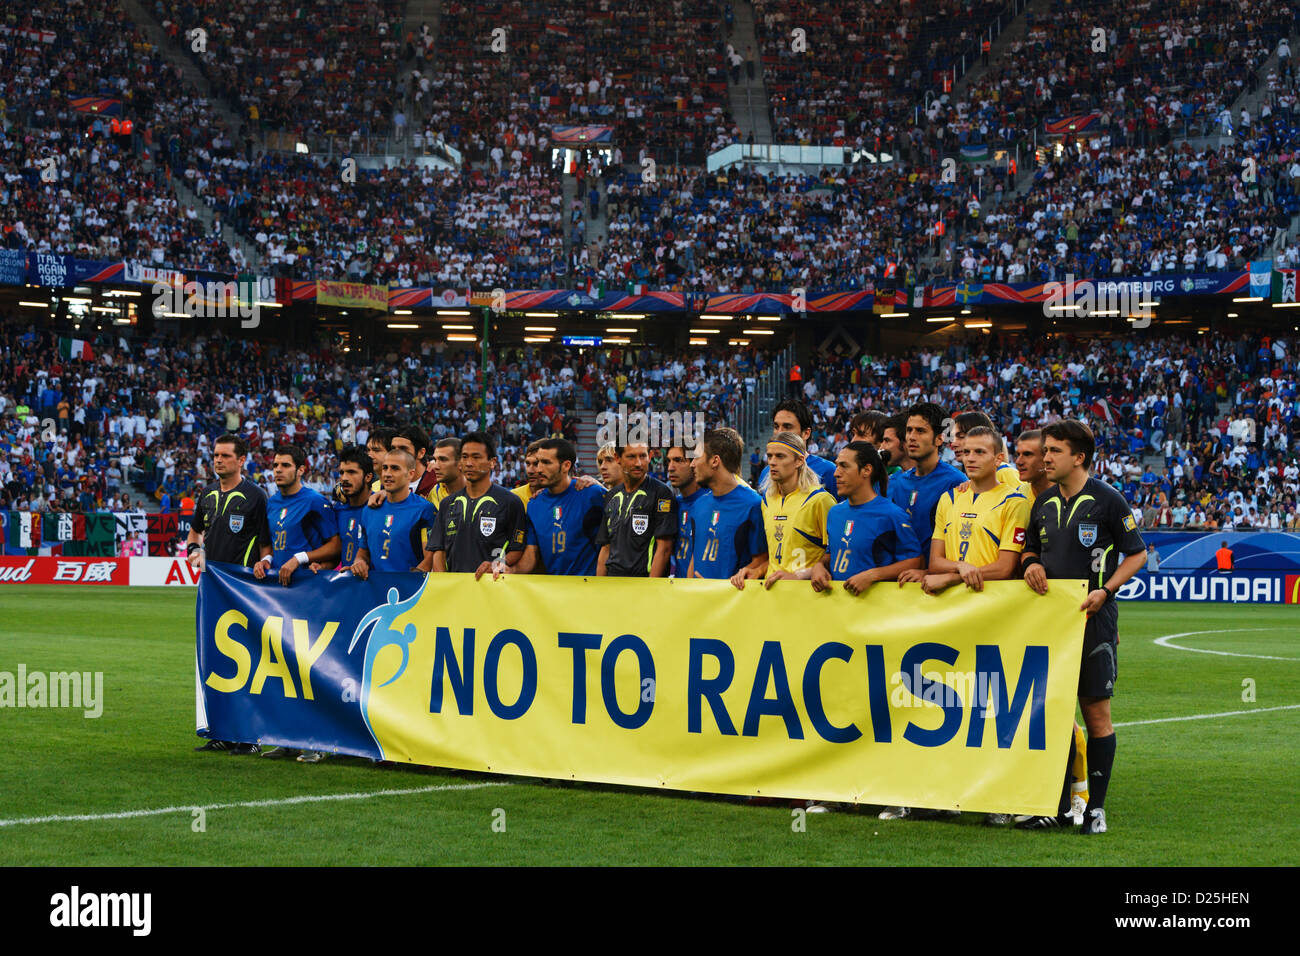 Italian and Ukrainian players line up with referees as part of an anti-racism campaign before World Cup quarterfinal - Stock Image